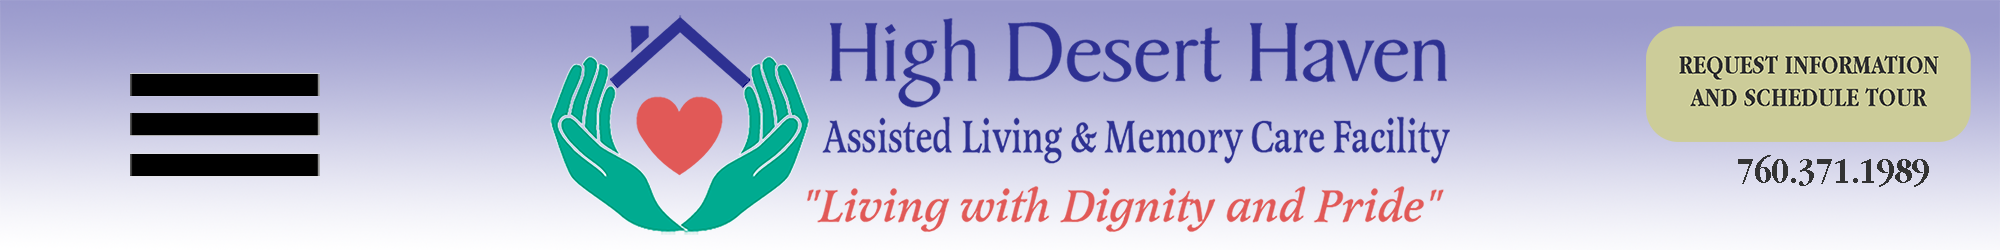 High Desert Haven Logo